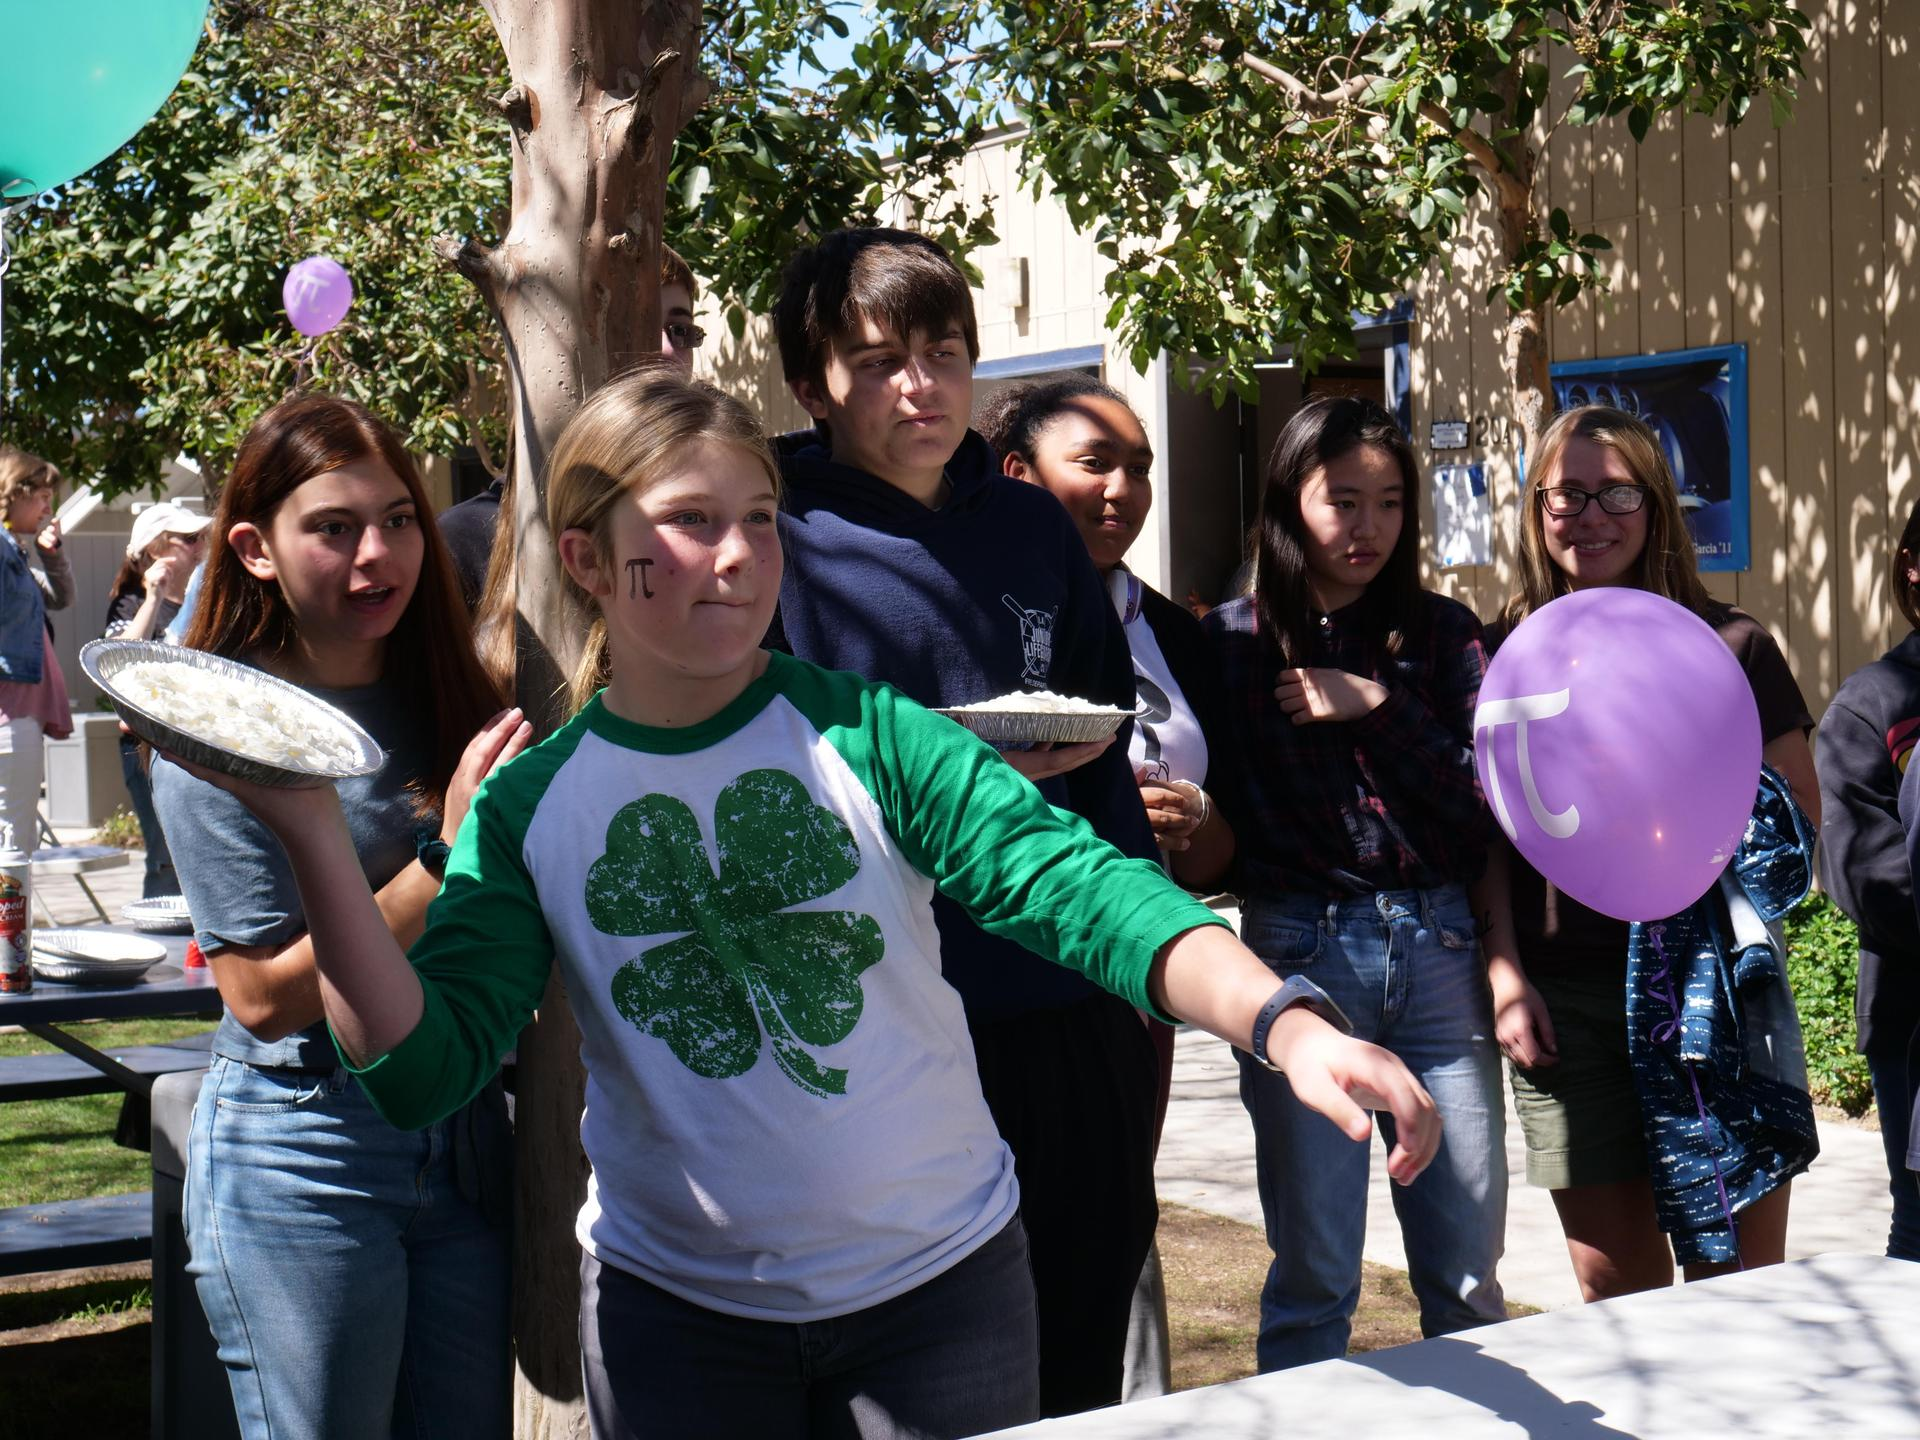 Pie toss activity for Pi Day Celebrations on March 14, 2019.